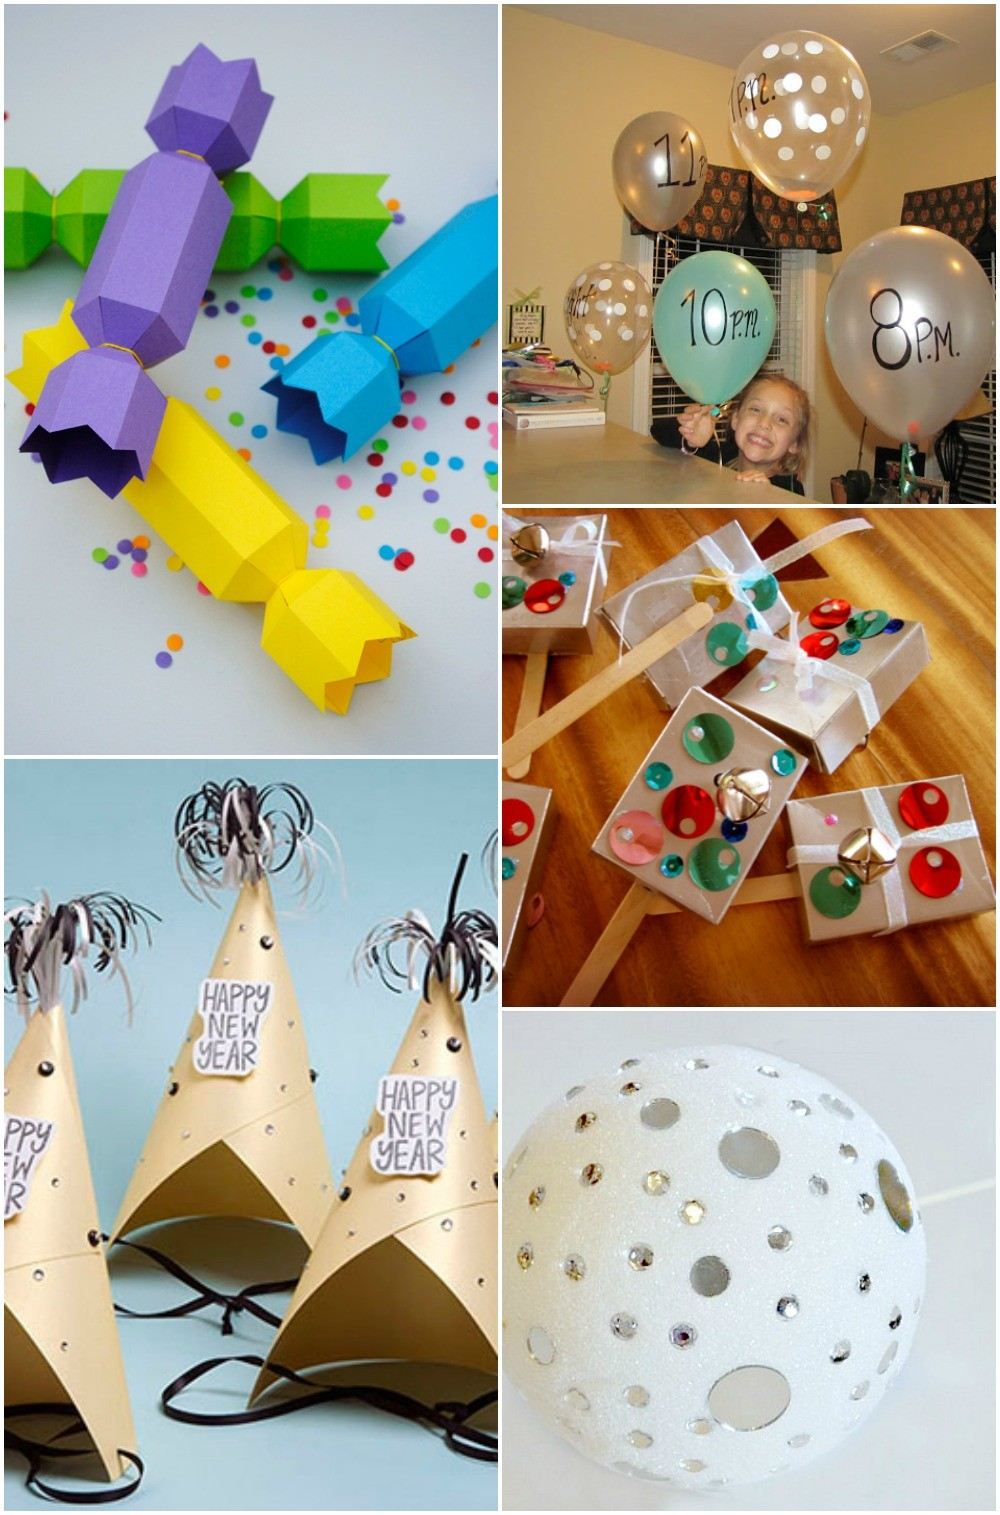 funny craft ideas 5 new years crafts for to ring in the new year 2070